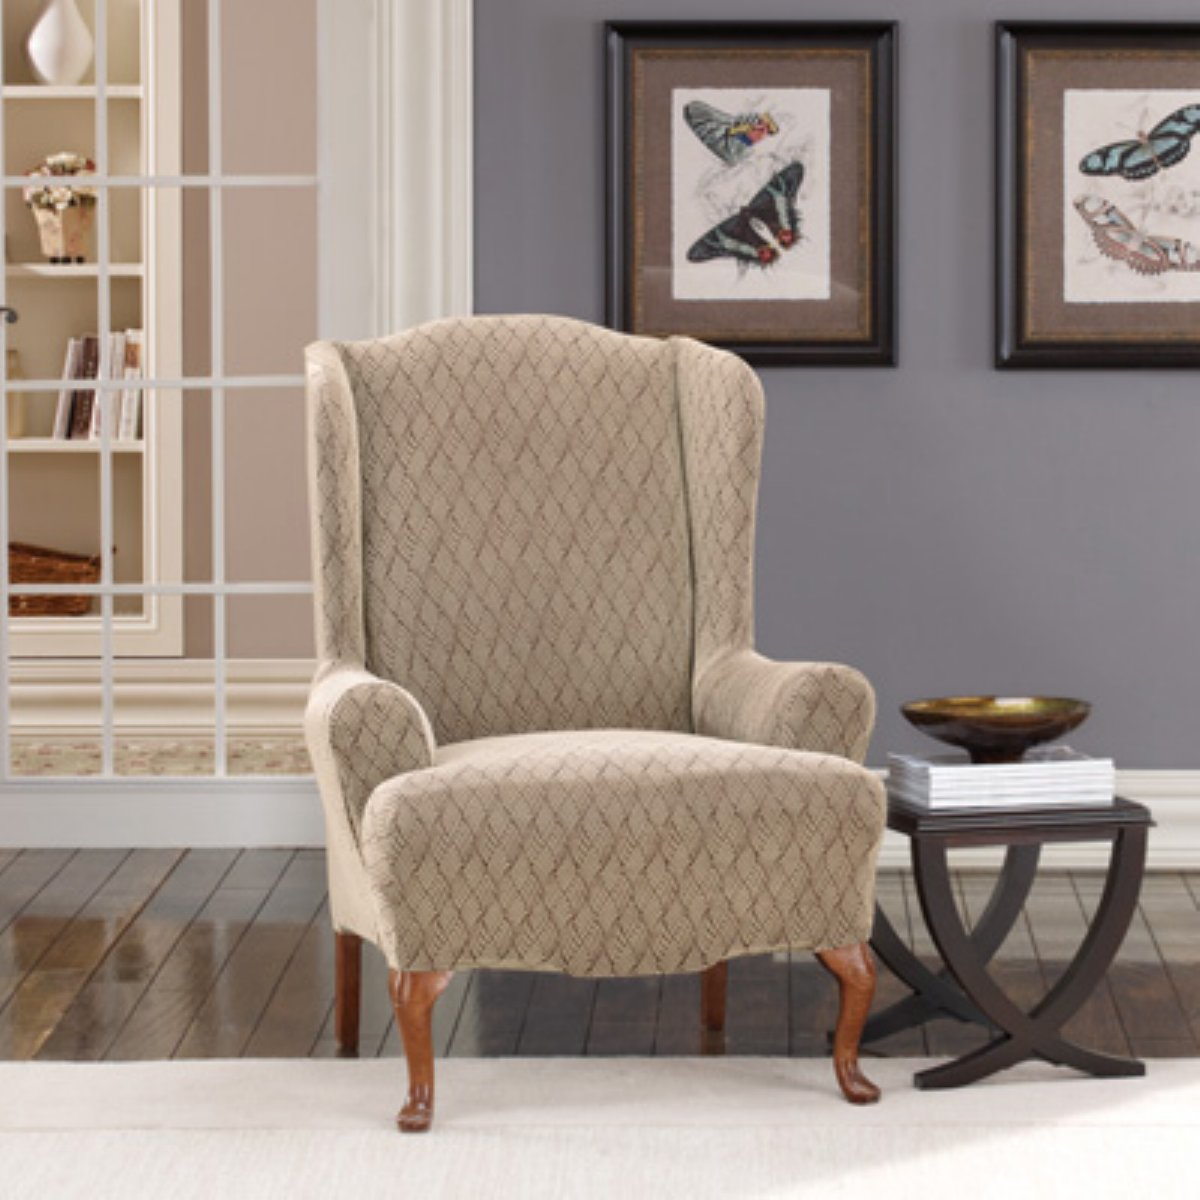 Adorable Creamy Patterned Wing Back Slipcover Design With Black Side Table  On White Area Rug And